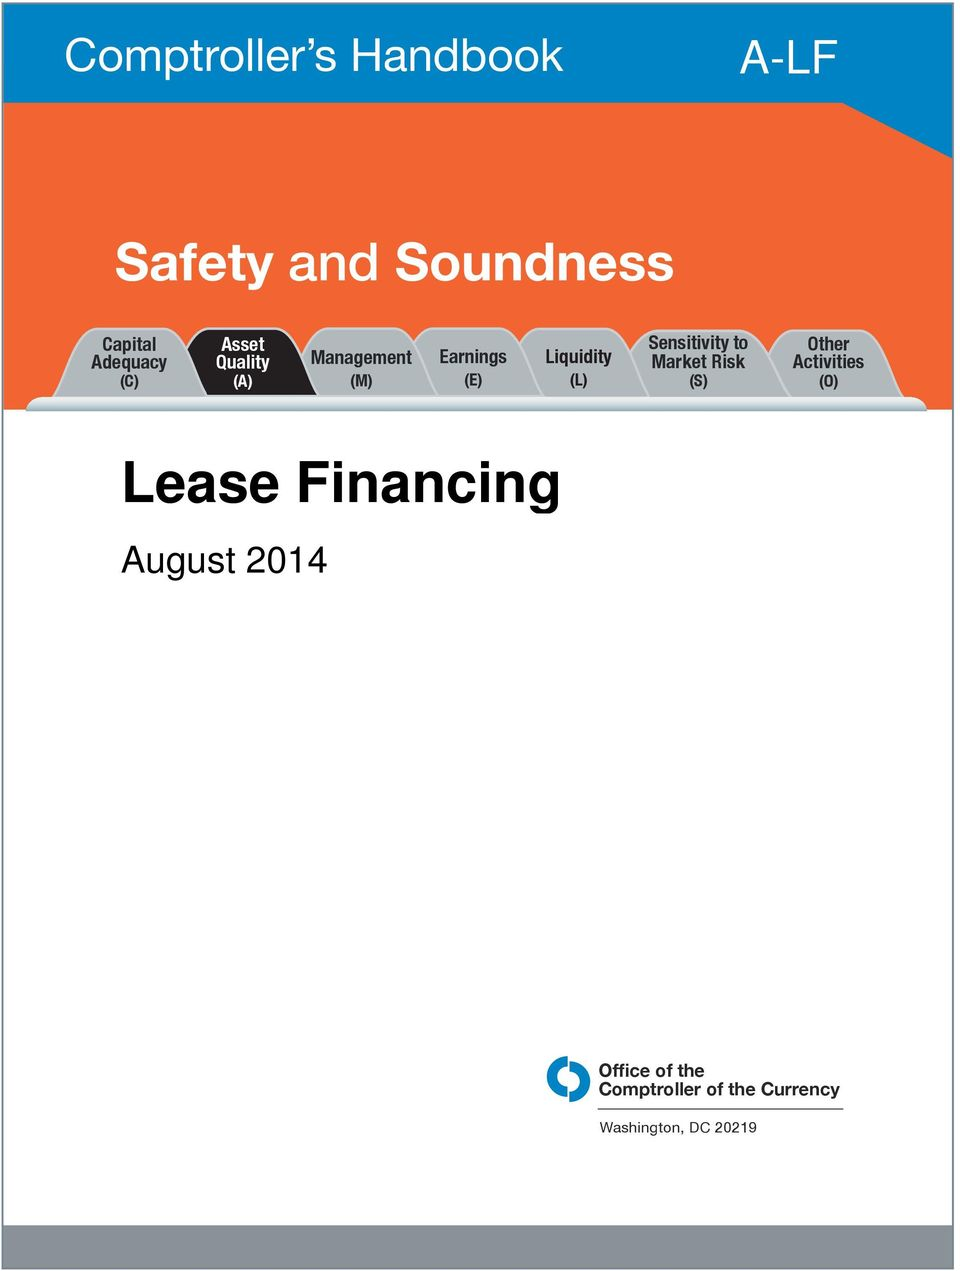 Sensitivity to Market Risk (S) Other Activities (O) Lease Financing